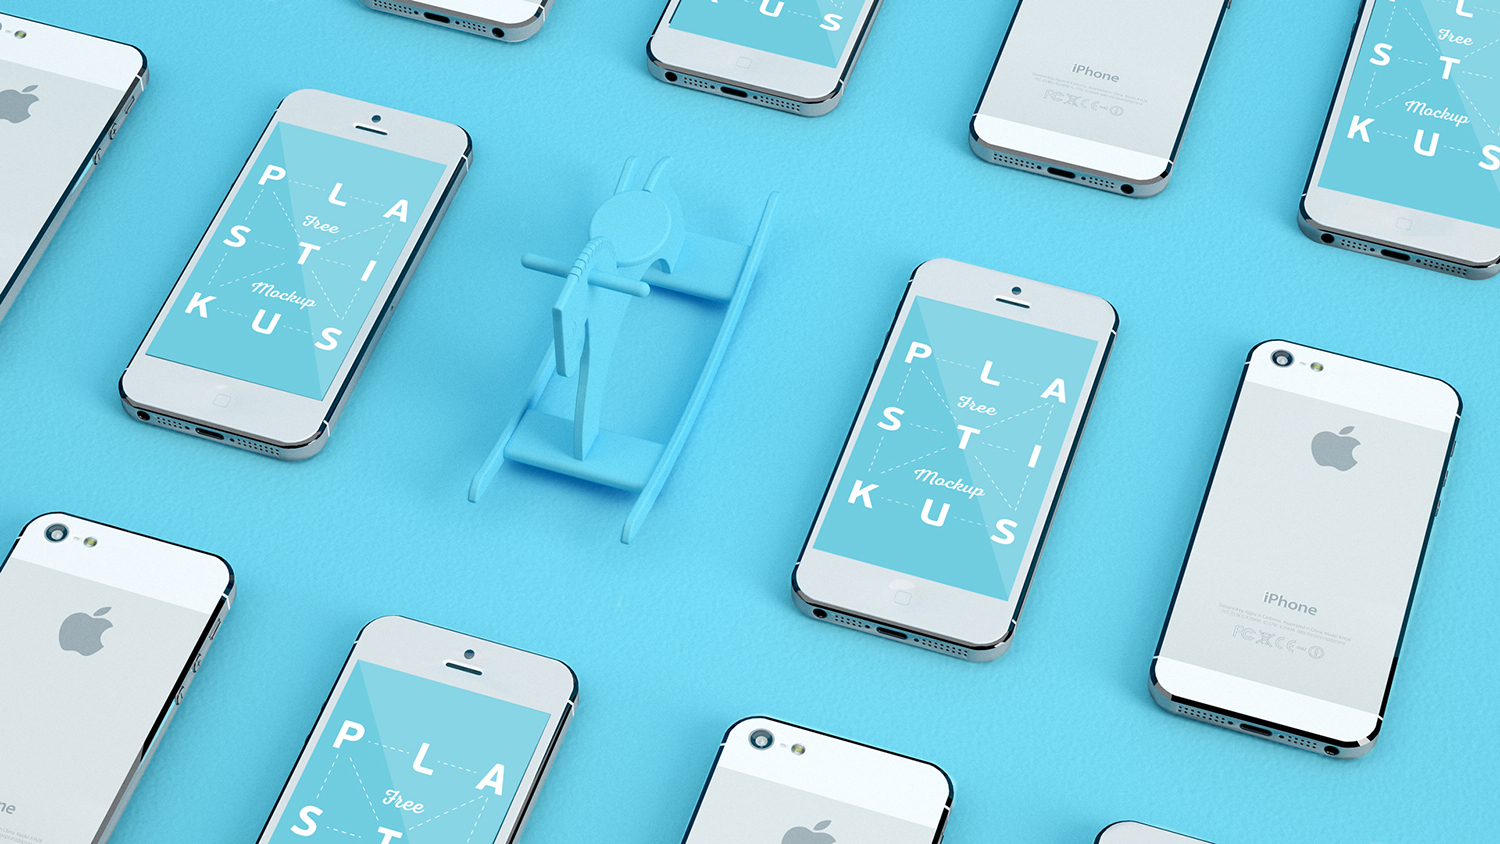 Apple Device Free Mockup